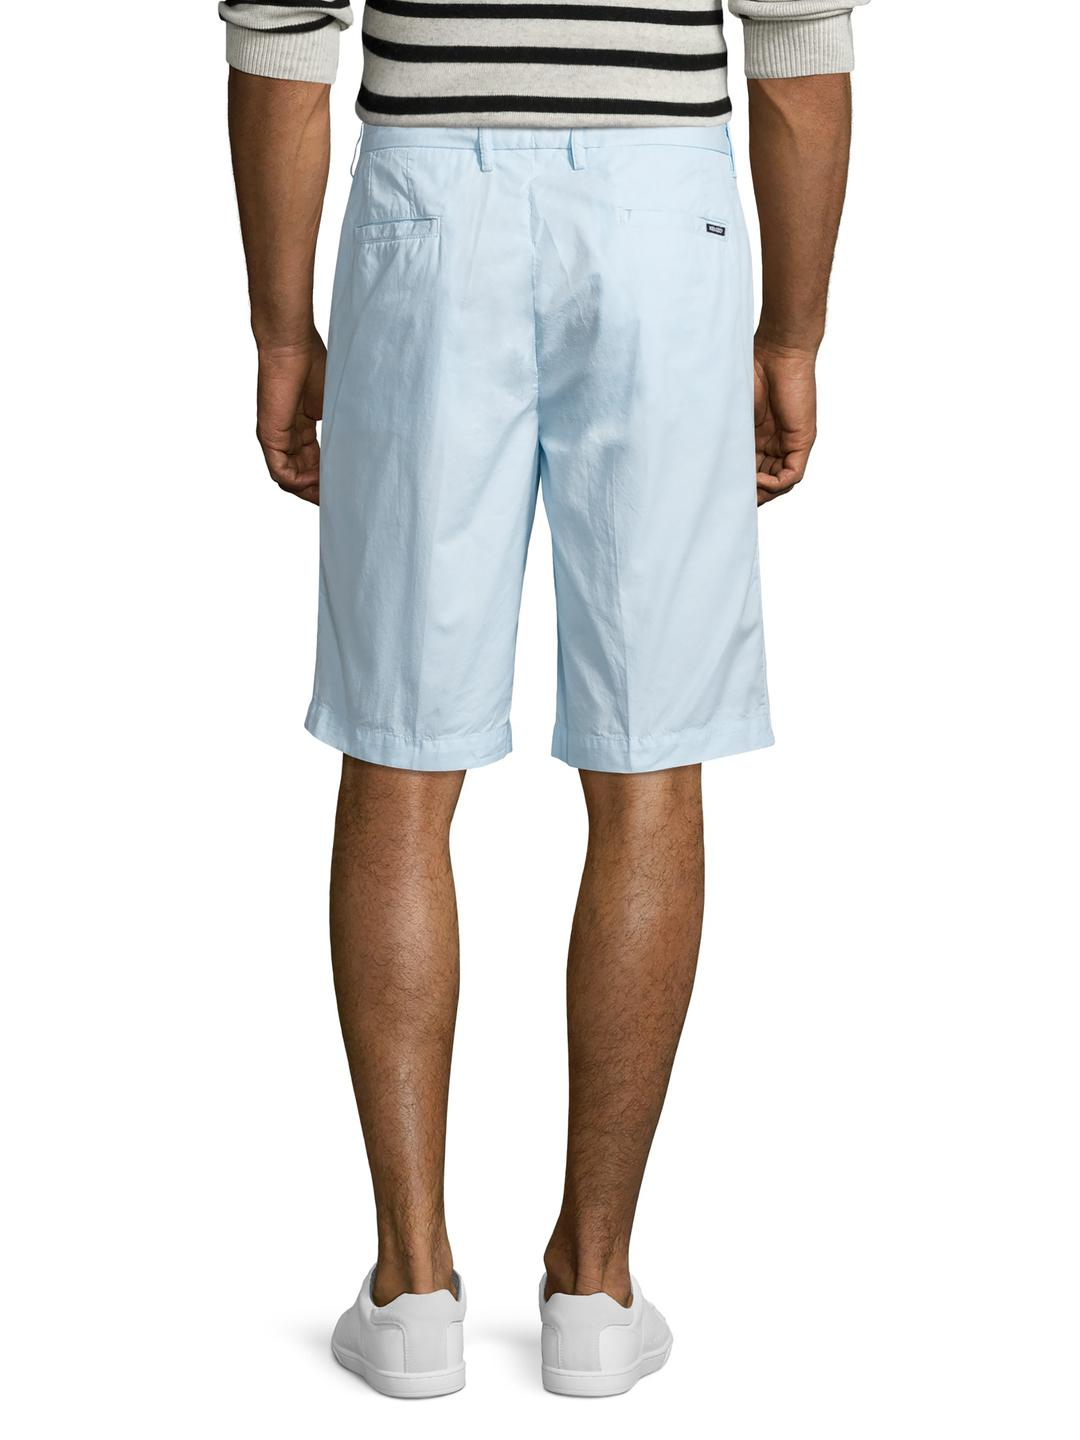 faa888ae5d86 Gallery. Previously sold at  Gilt · Men s Arc Teryx Stowe Men s Cut Off  Shorts ...